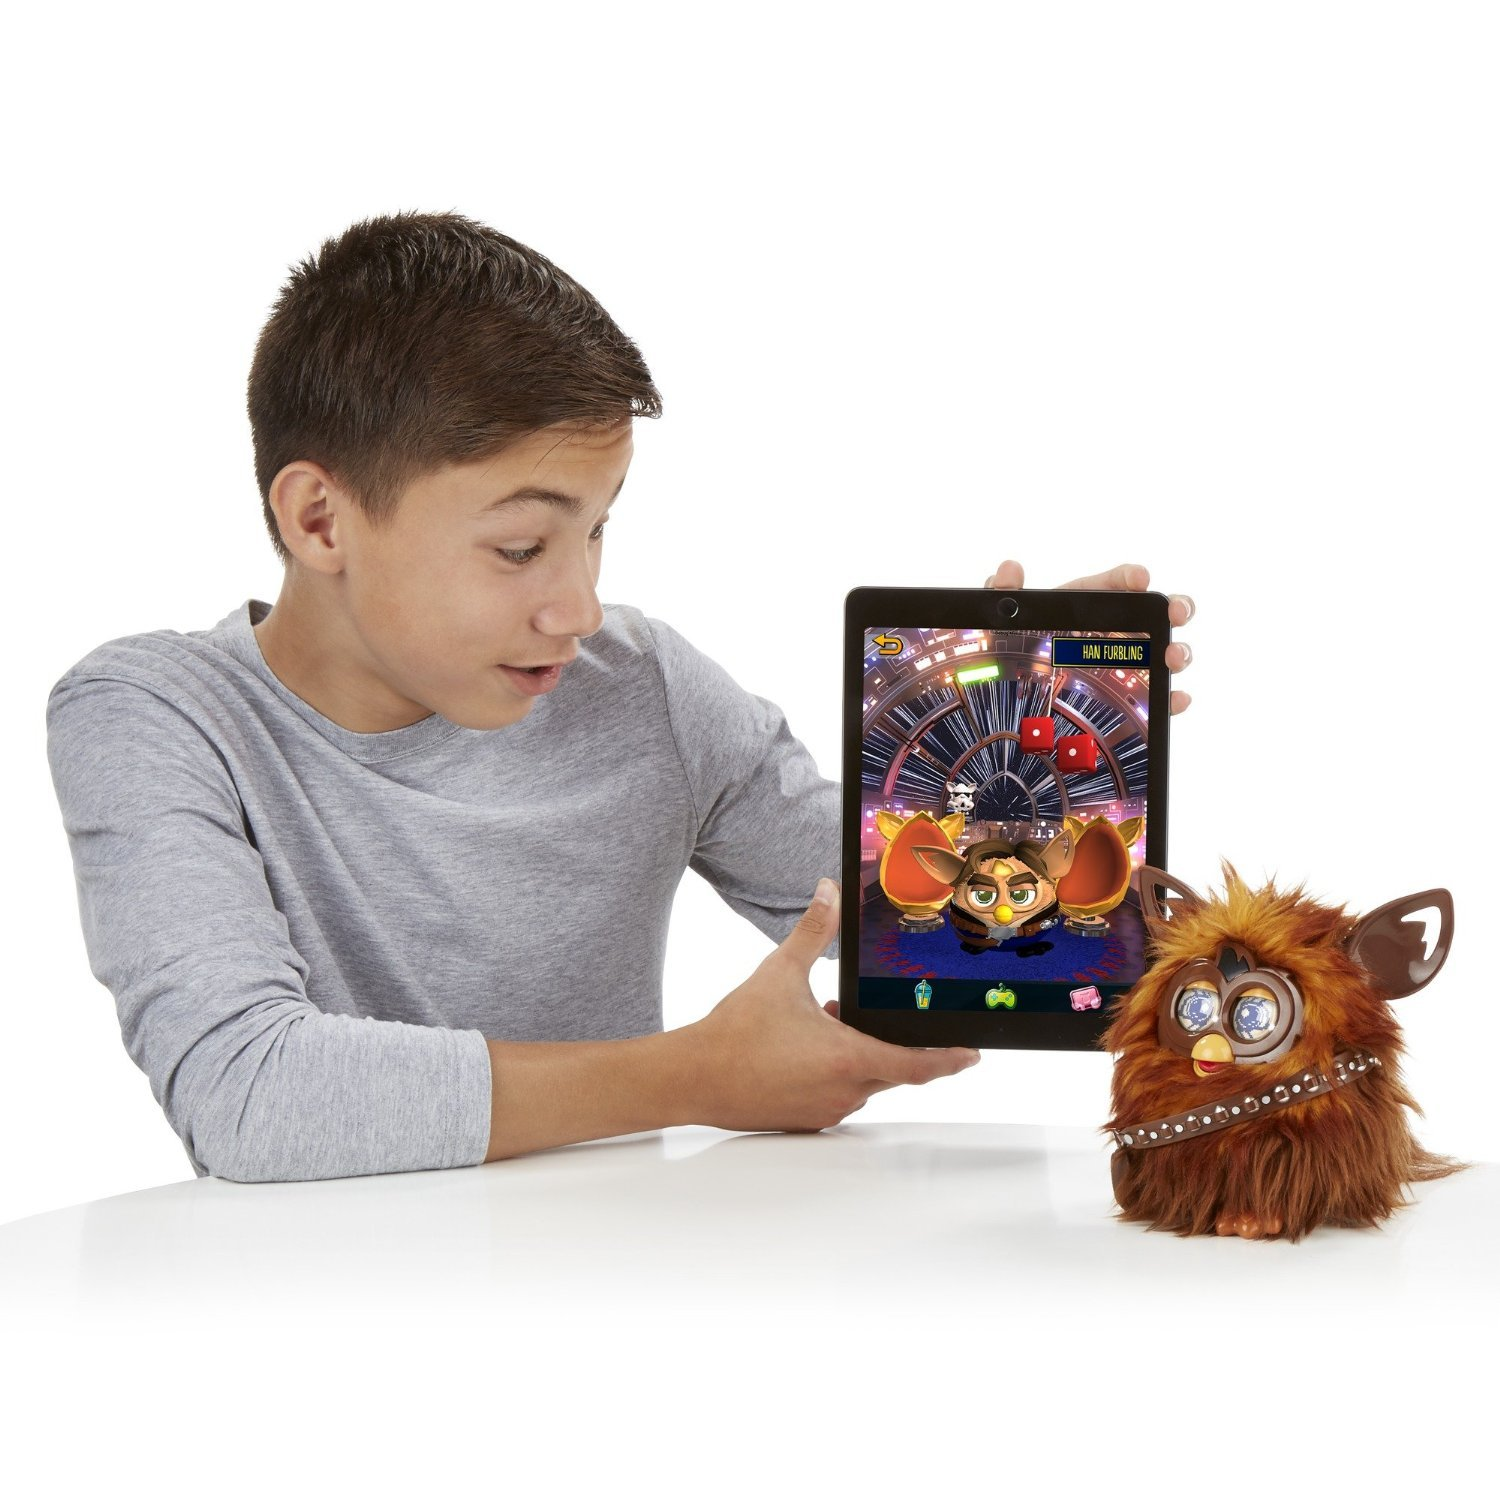 Image 3 of Star Wars Furby Furbacca Interactive Creature, Hasbro, 6+